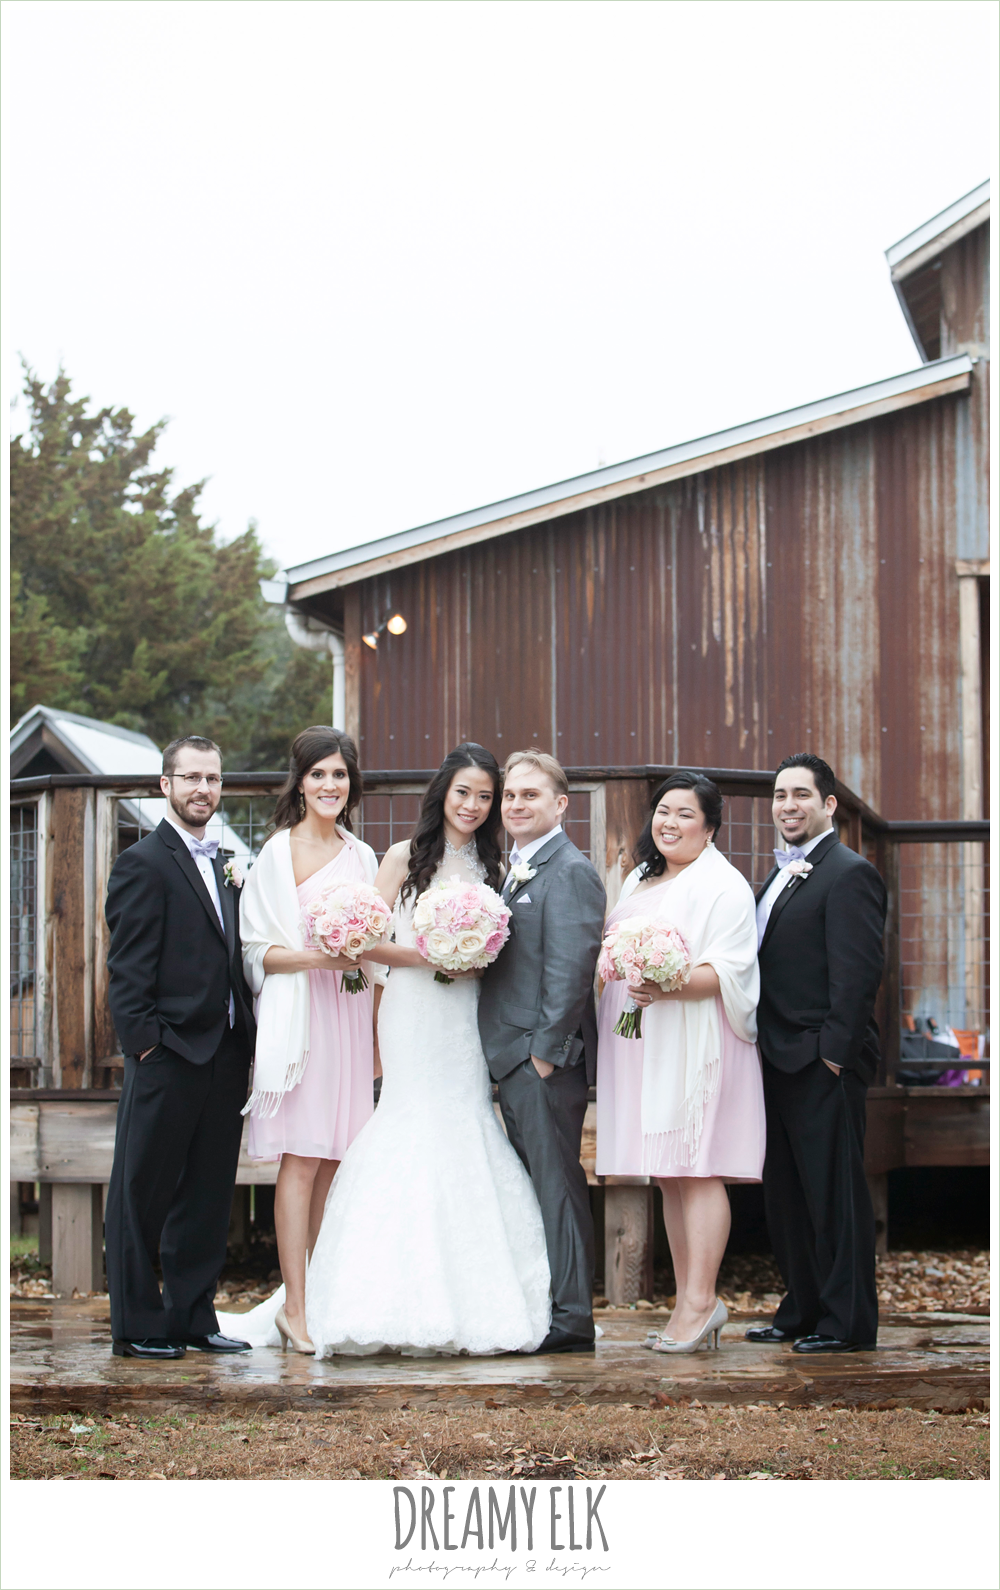 bridesmaids with shawls, high necked trumpet wedding dress, groom in gray suit, foggy wedding day {dreamy elk photography and design}